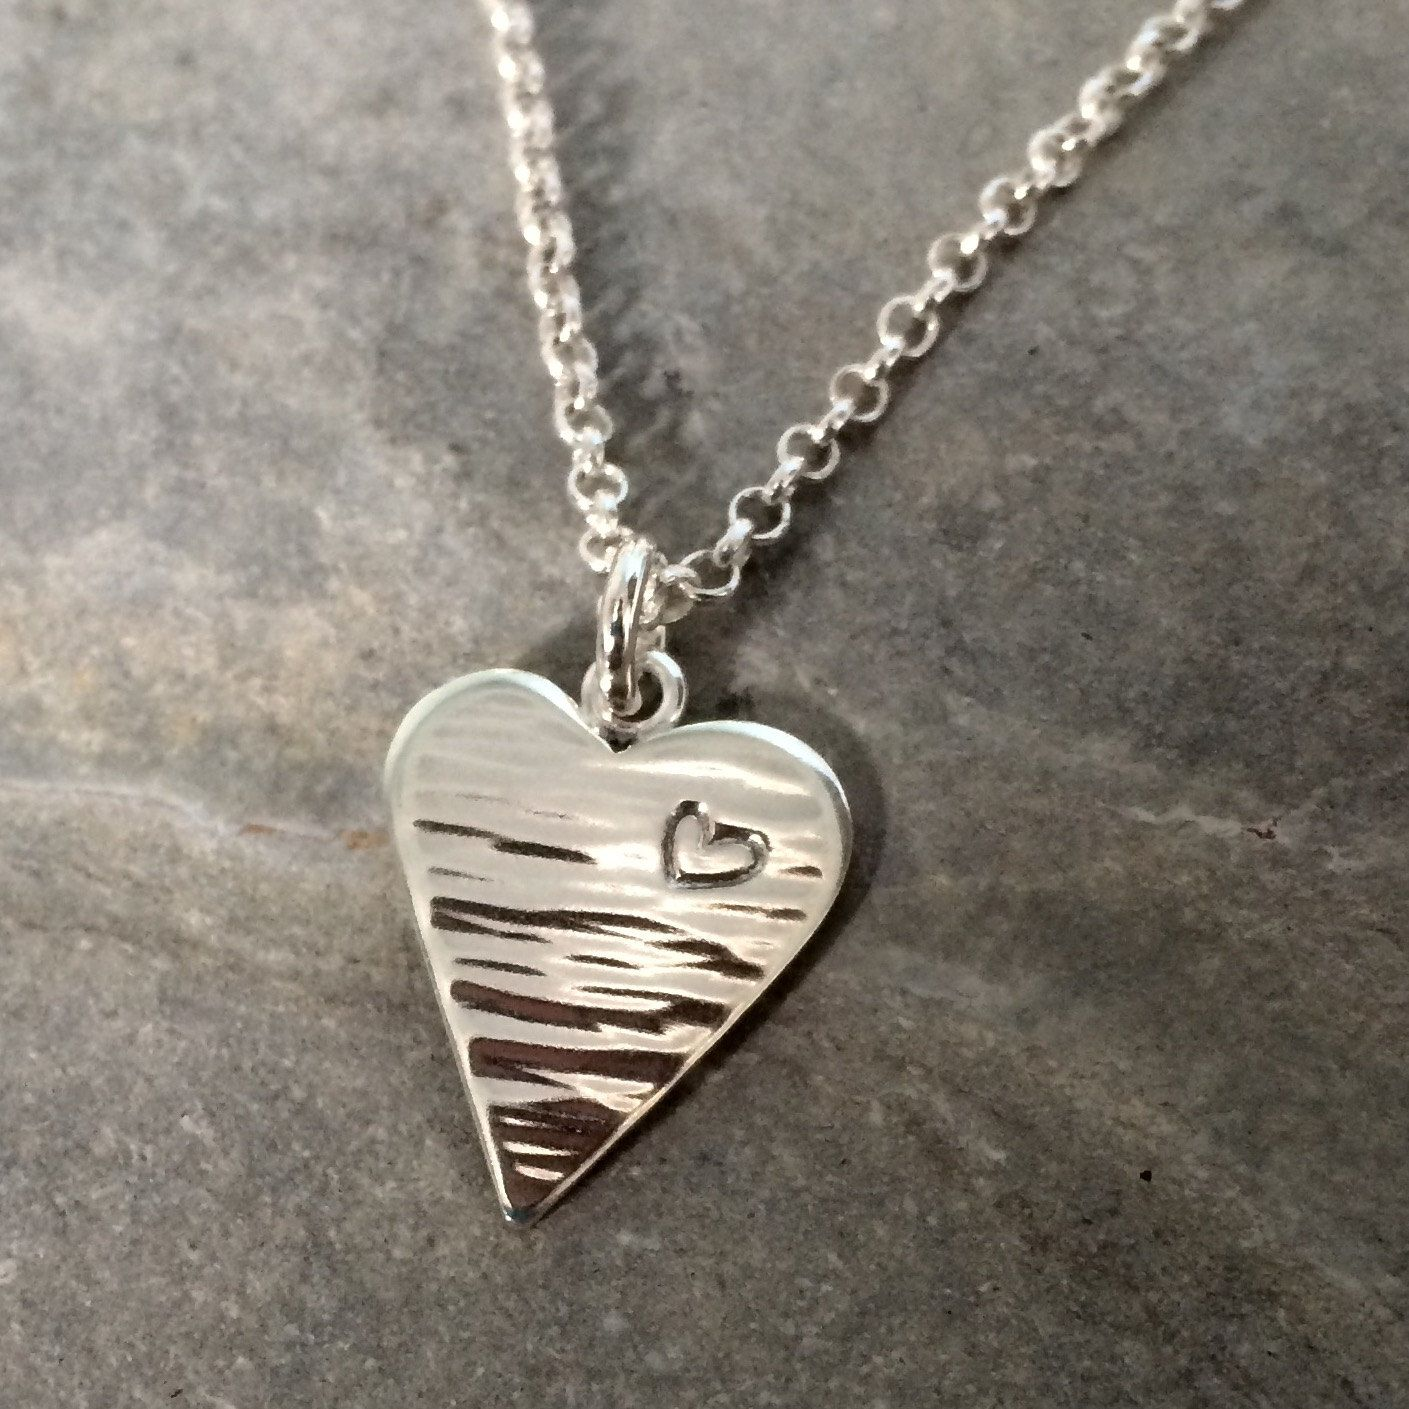 6c75e0bc4c Solid sterling silver heart necklace handmade by BlueRockJewellery on Etsy